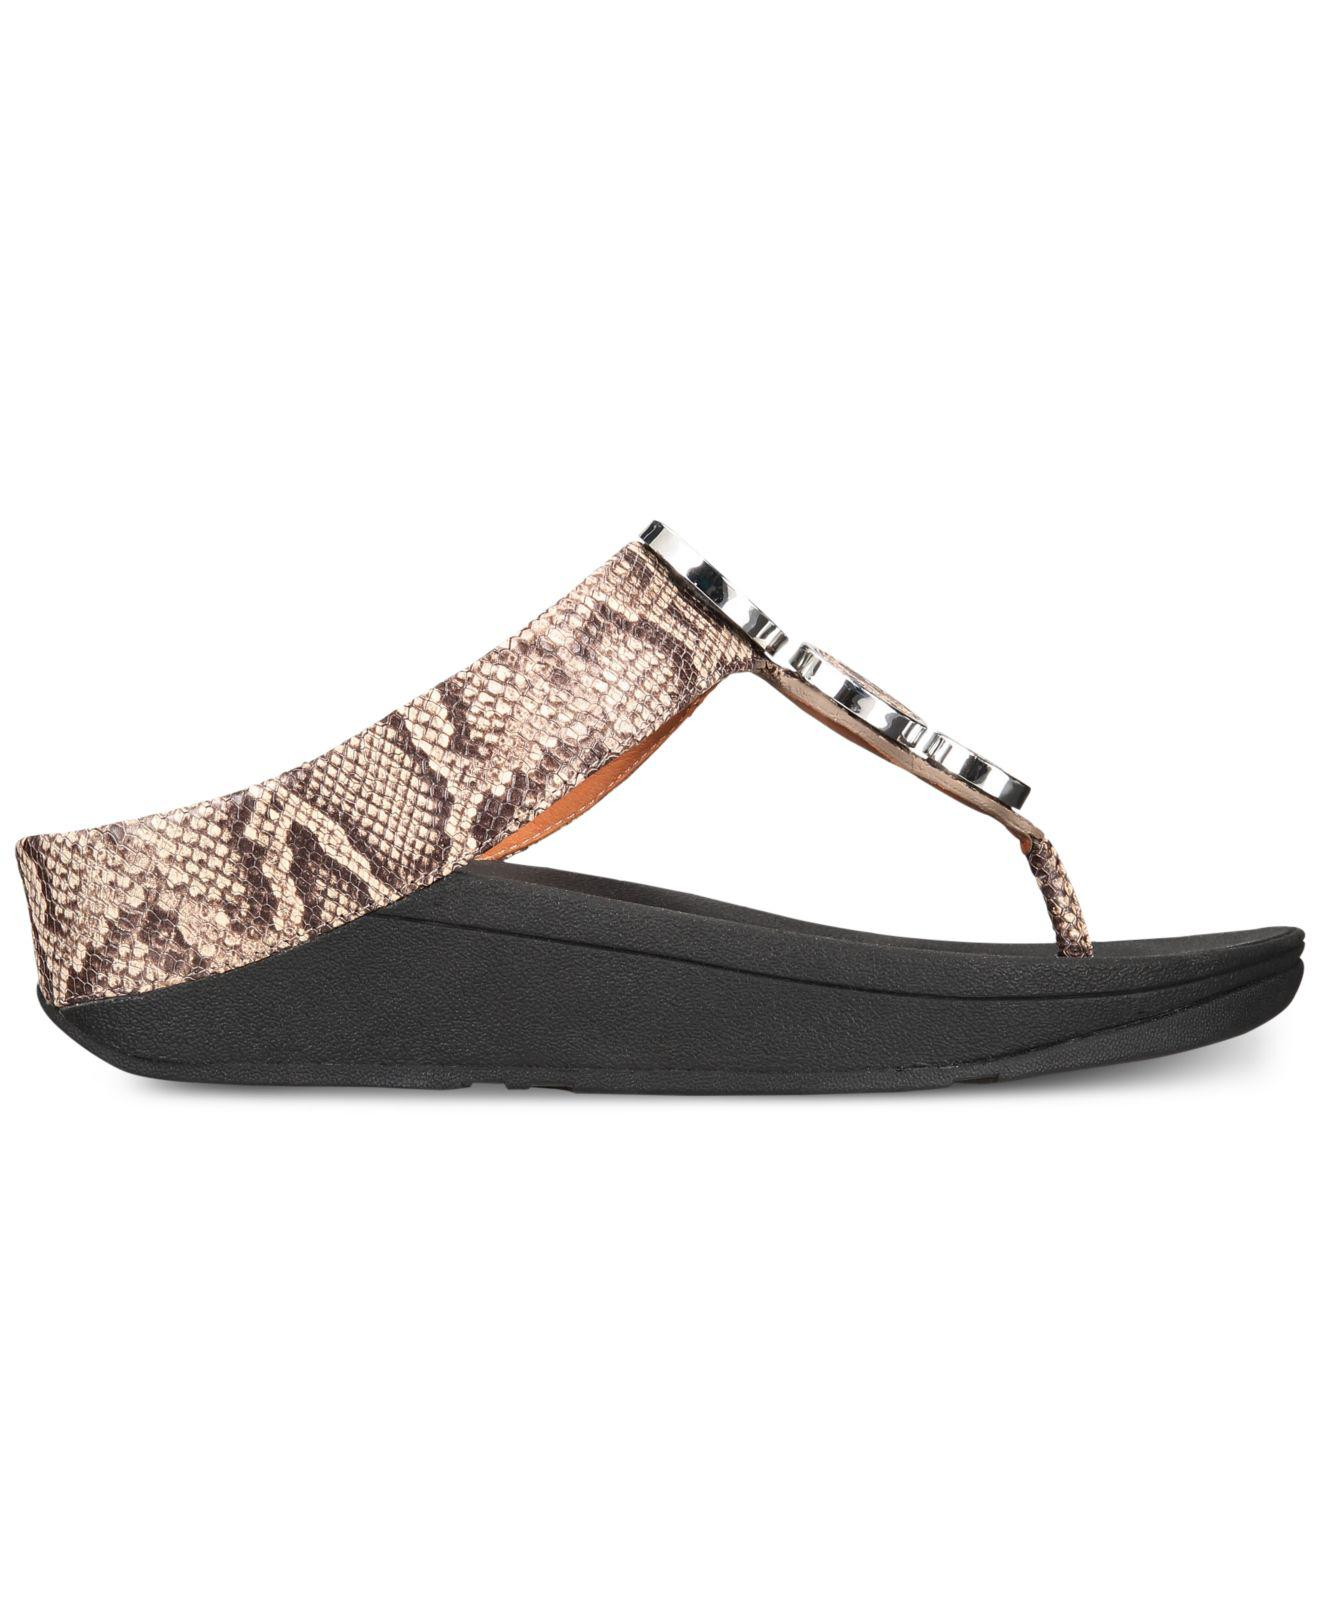 fb57a8b4df4696 Lyst - Fitflop Halo Toe-thong Sandals